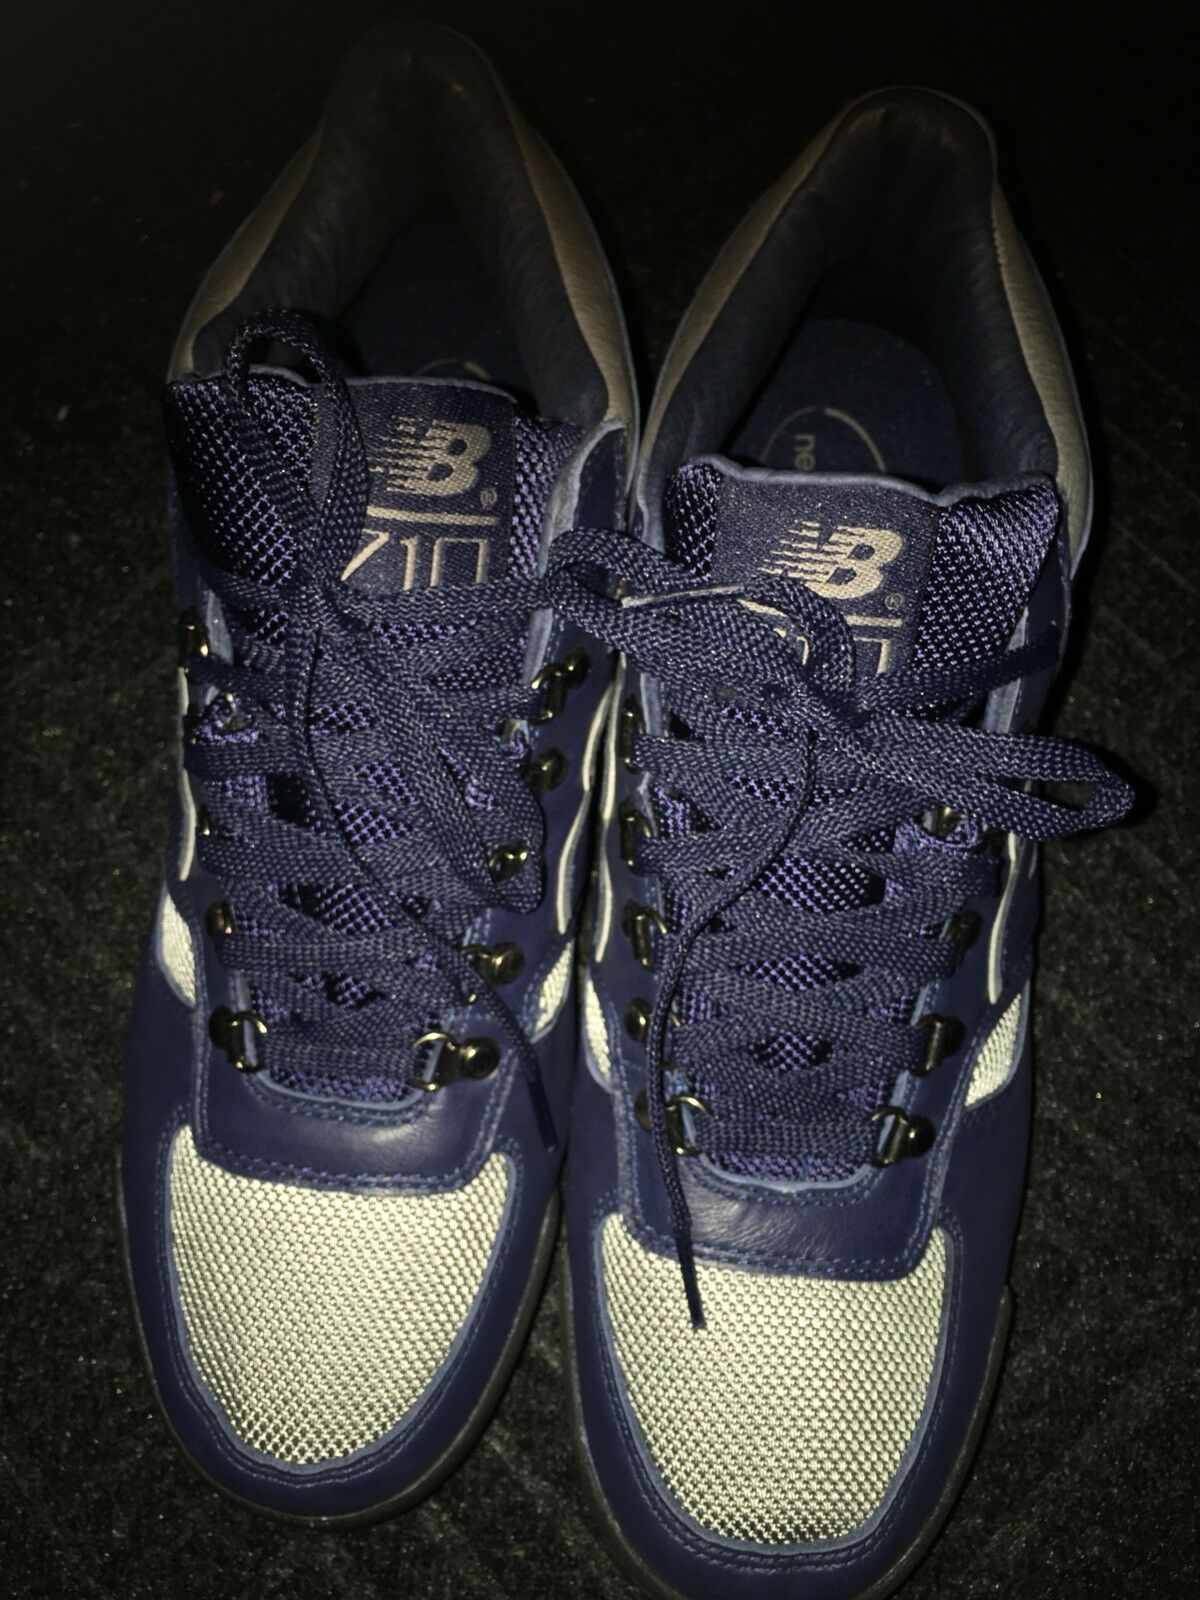 NEW BALANCE avvio   RARE   NEW    NO RESERVE   SEE DETAILS